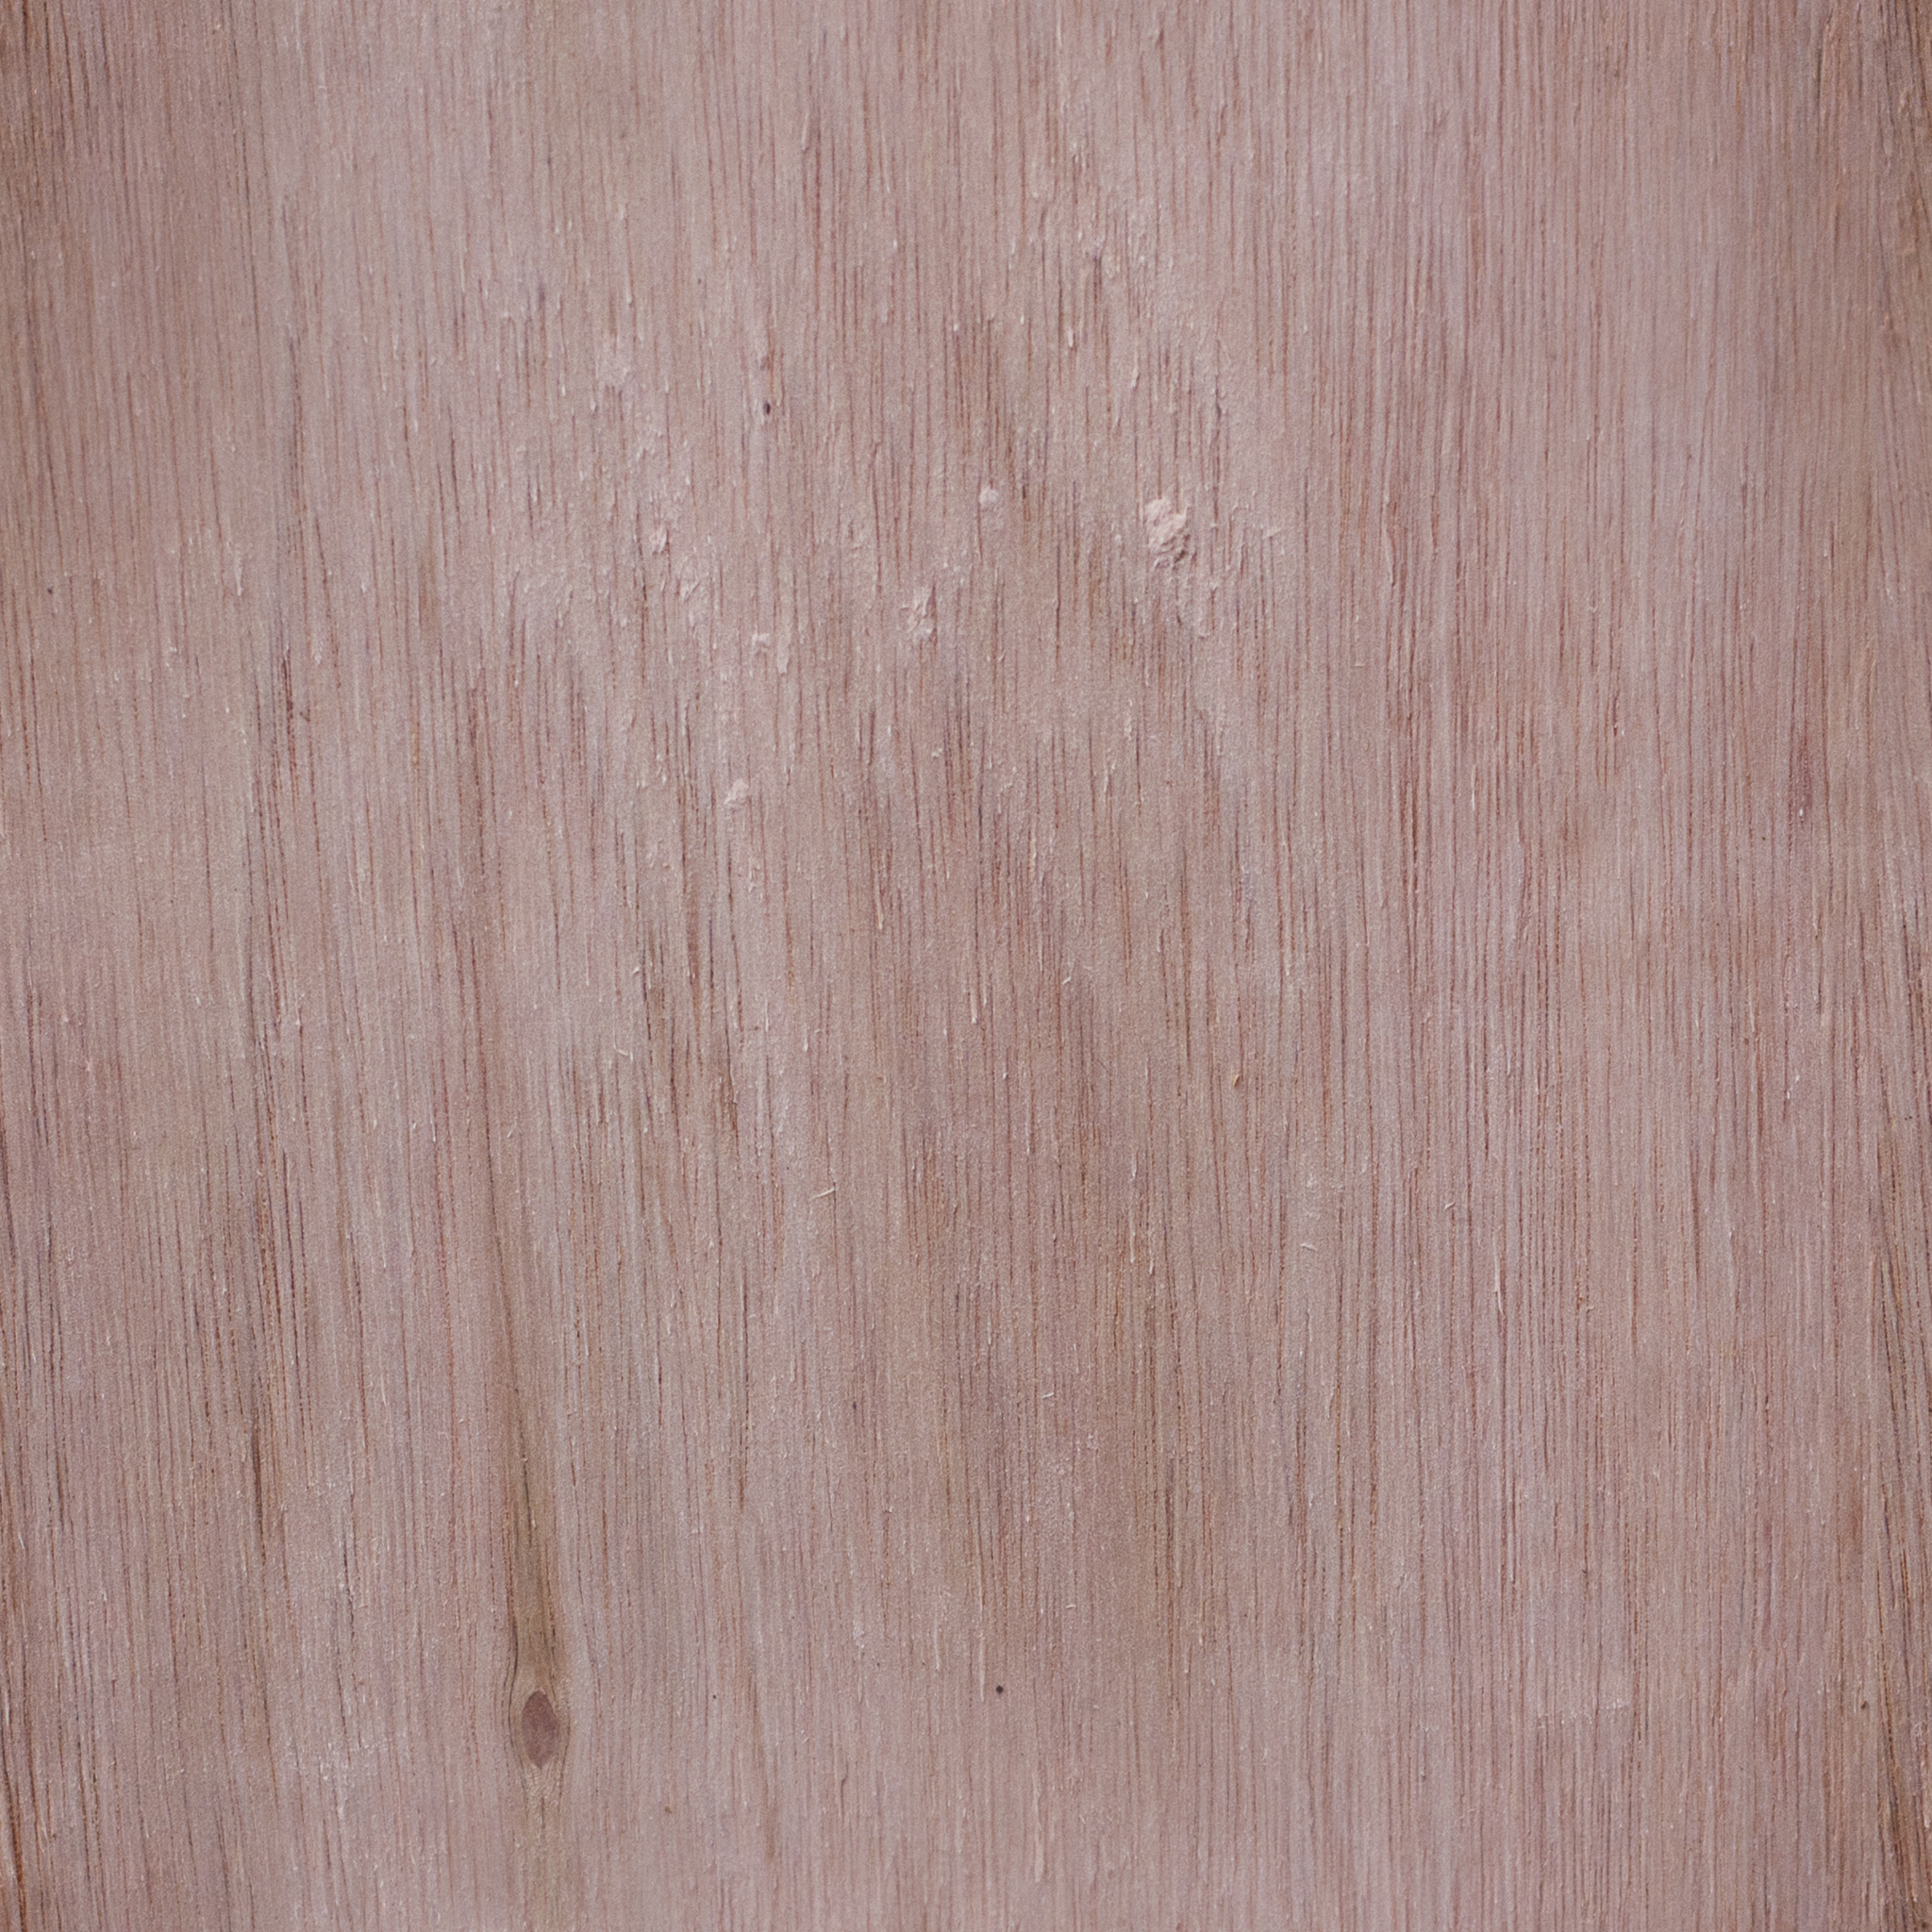 Antique White Wood.jpg